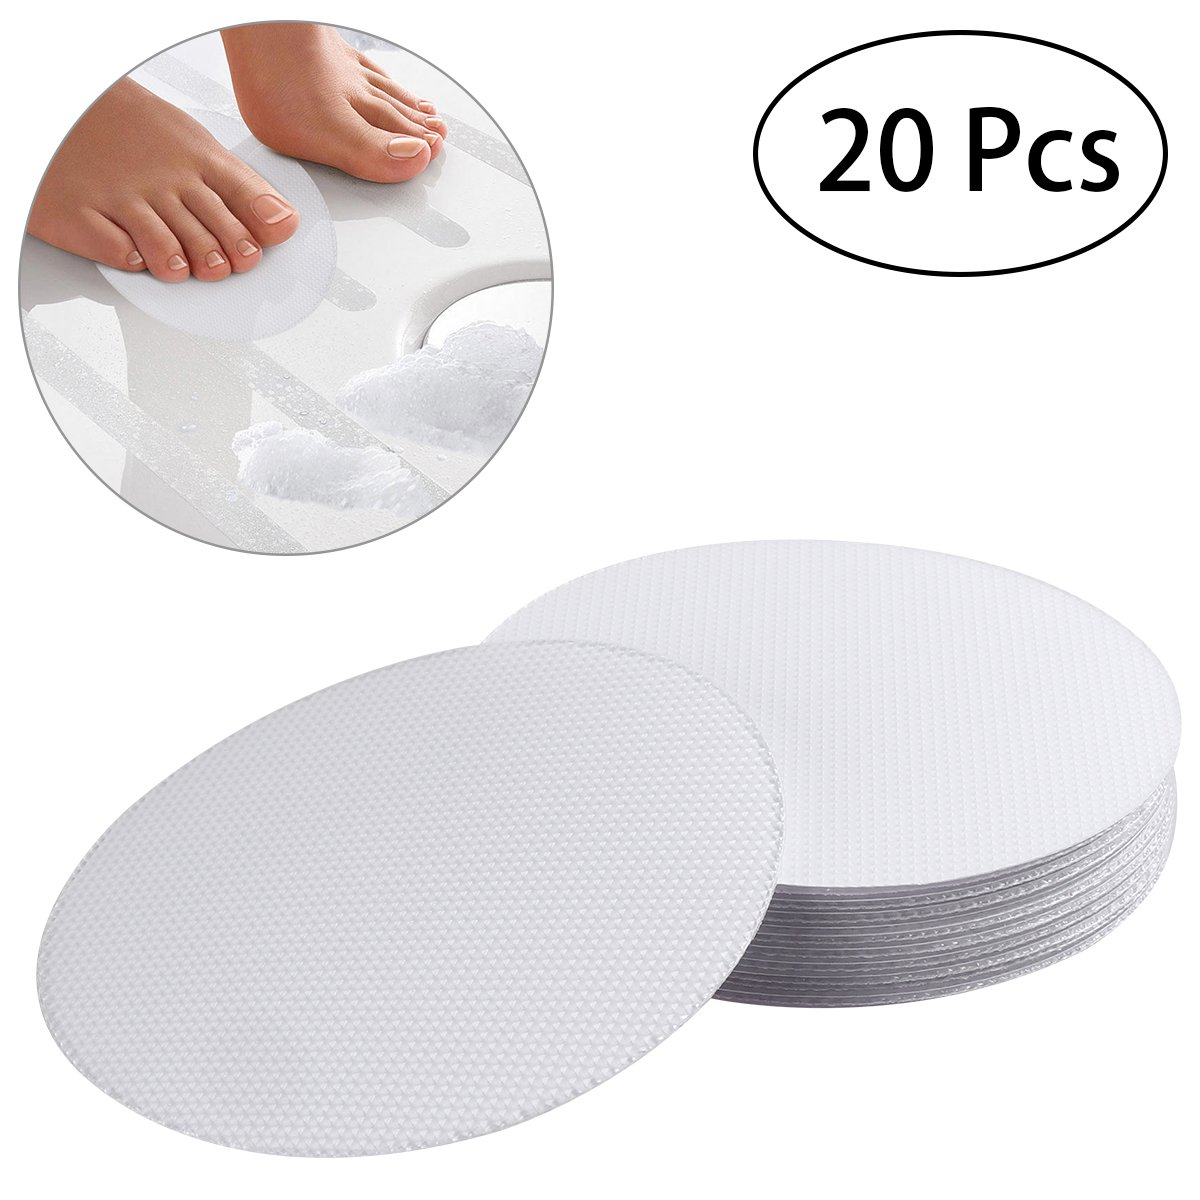 OUNONA 20 PCS Non-Slip Safety Shower Treads 10CM PEVA Anti-slip Discs Tape Non Slip Stickers for Tubs Bath (Clear)